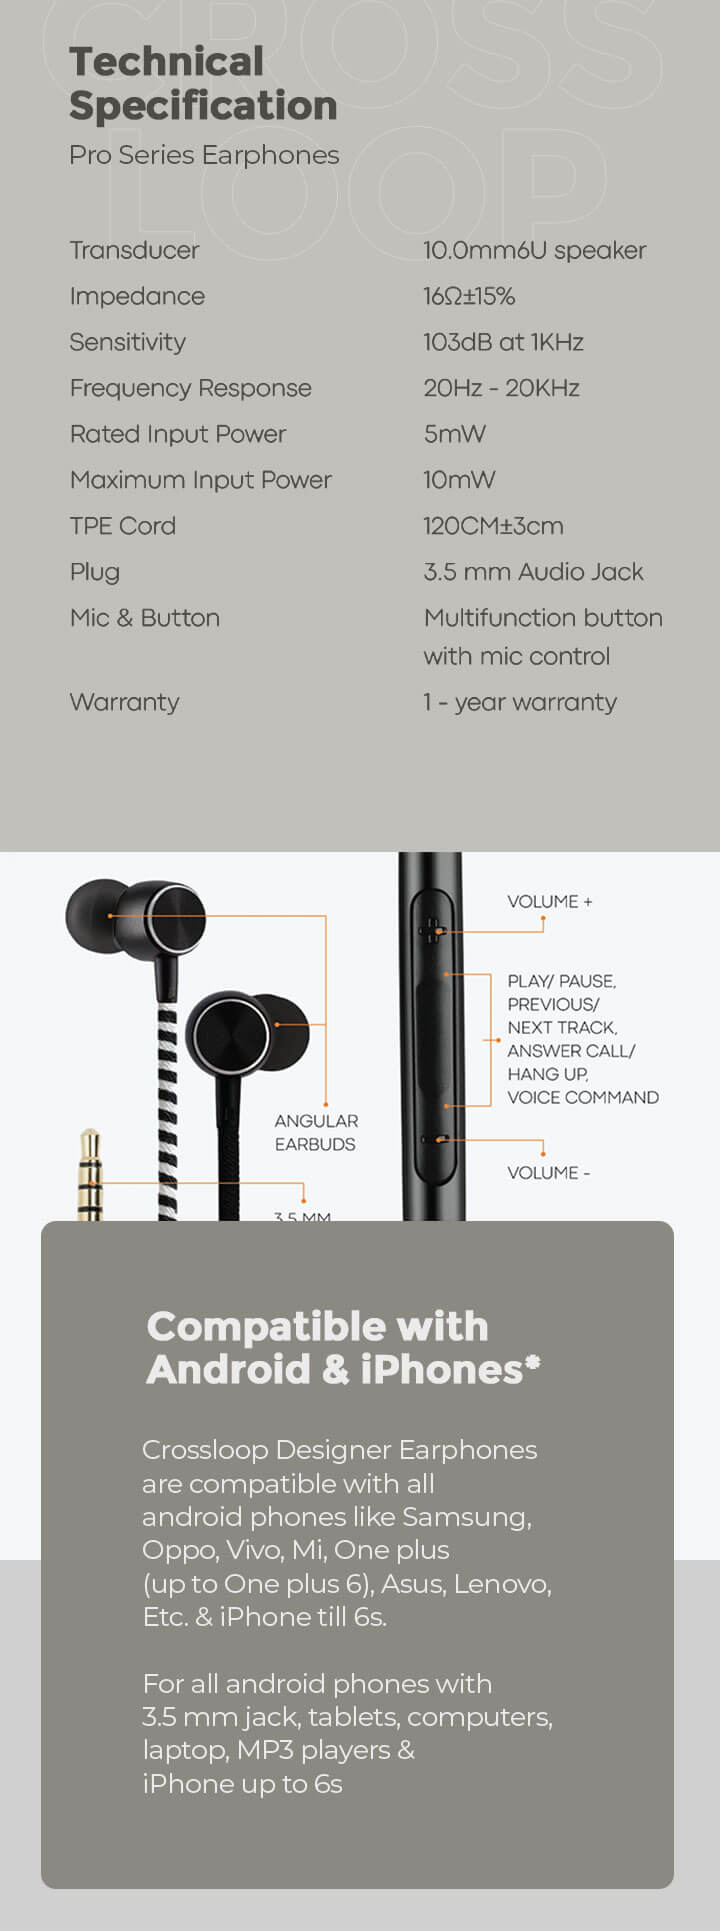 CrossLoop Pro Series Earphone with Mic & Volume Control in Pink & Black Description Image Mobile Site 1@Bewakoof.com